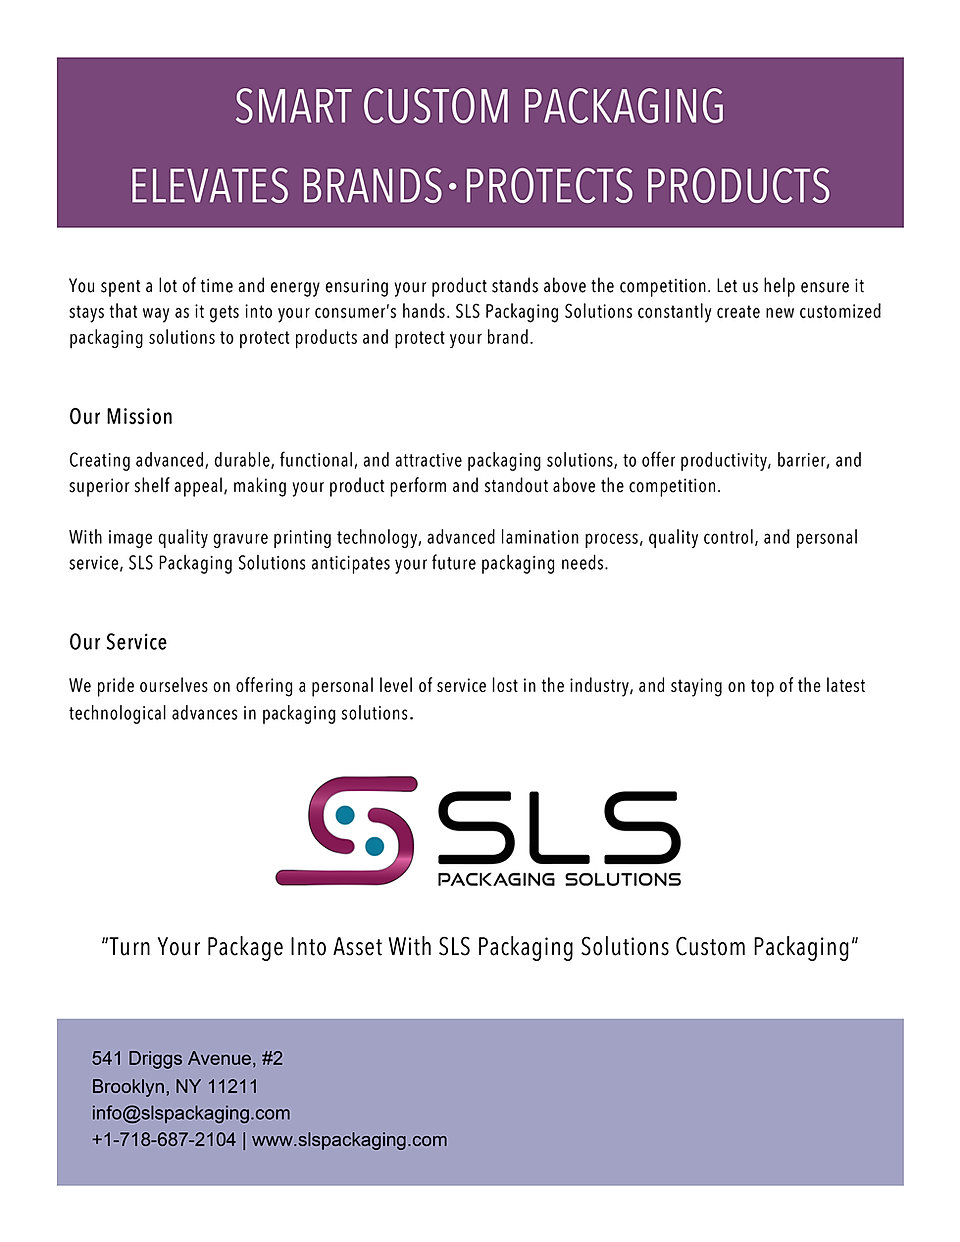 SLS-Packaging-Solutions-brochure-final-7